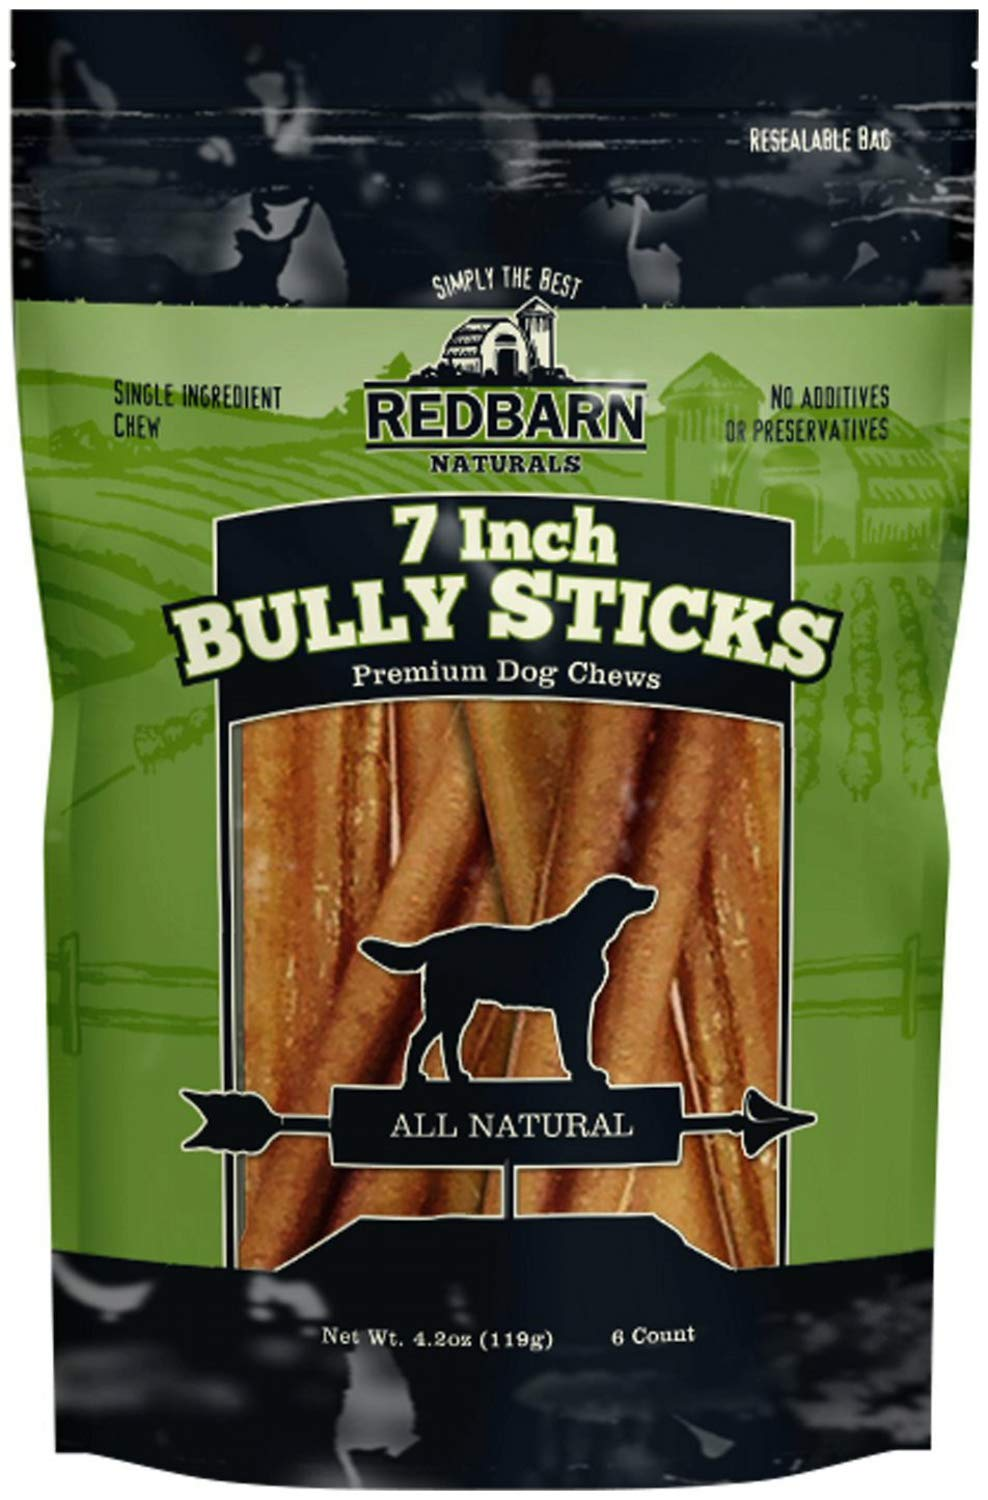 Redbarn Bully Sticks Dog Chews, Naturals, 7 Inch, 6 Count, 3 Pack